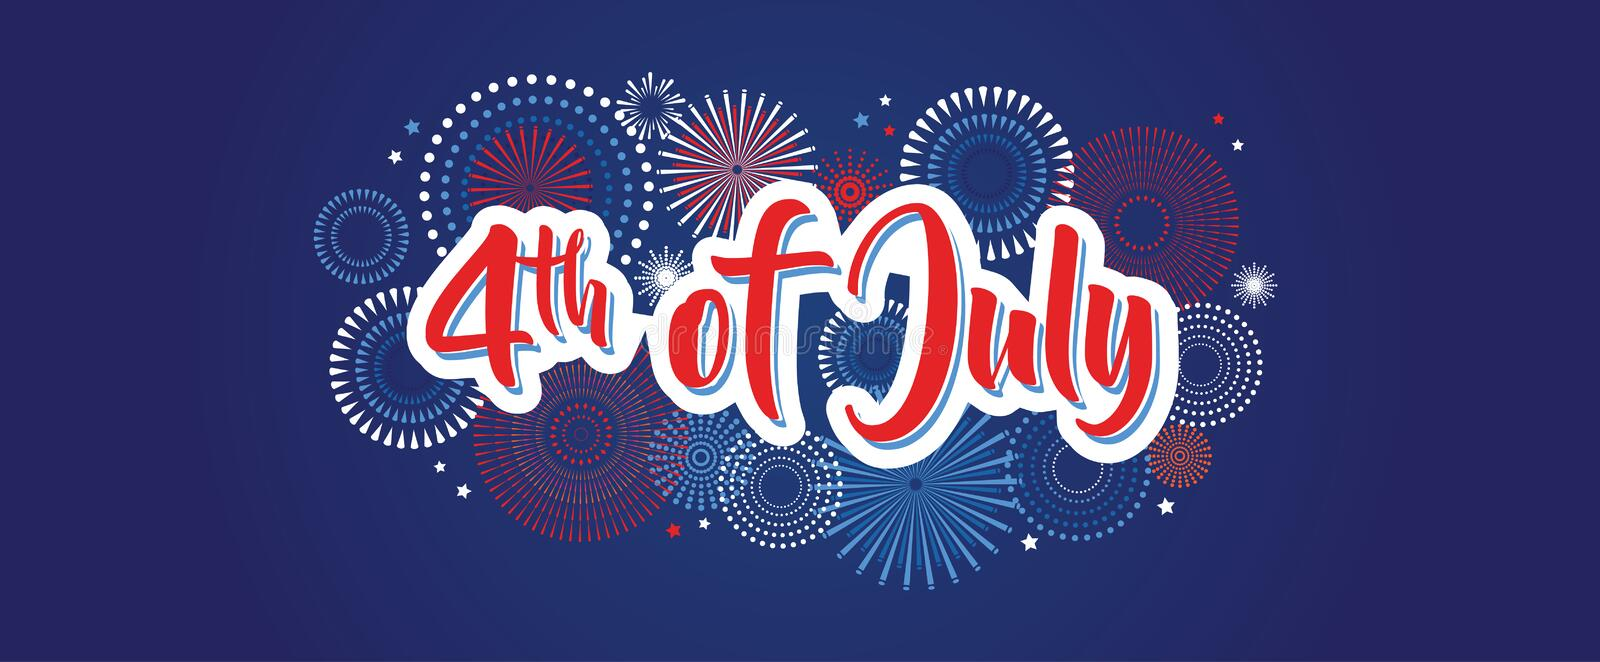 4th july fireworks background, fourth vector banner, american national flag decoration, celebration usa independence day royalty free illustration